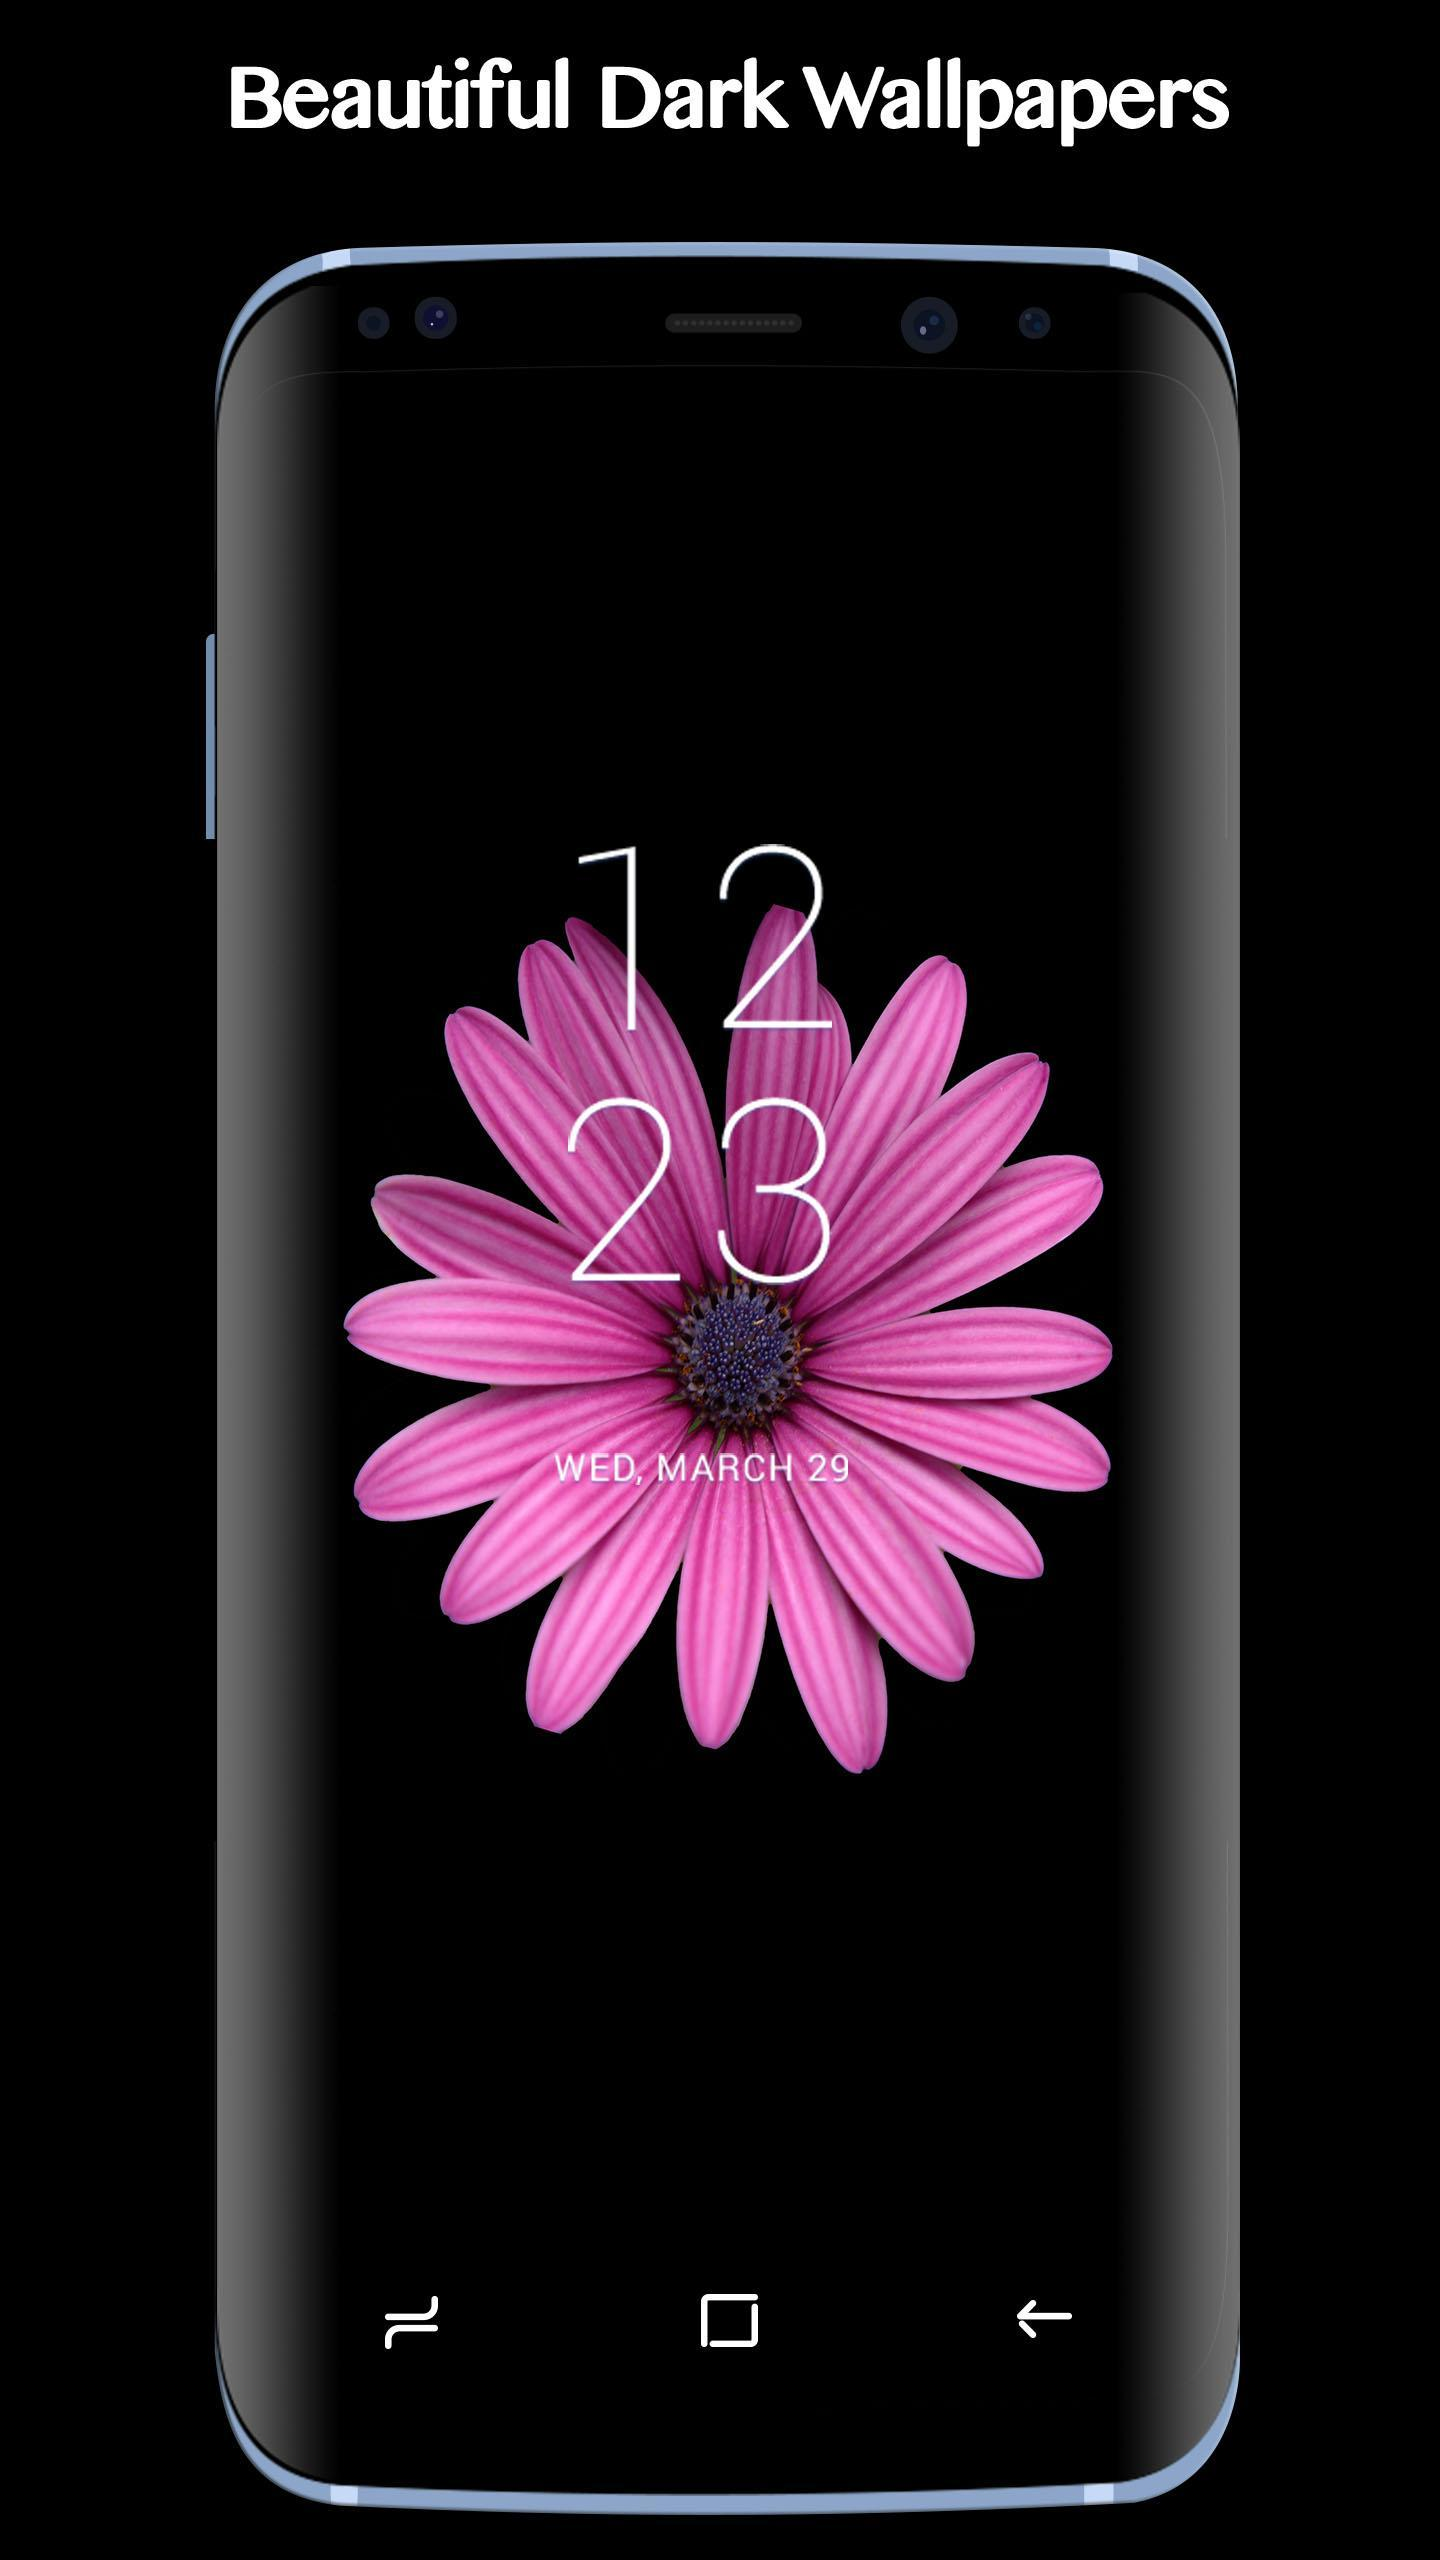 Black Wallpapers Dark Wallpapers Hd For Android Apk Download